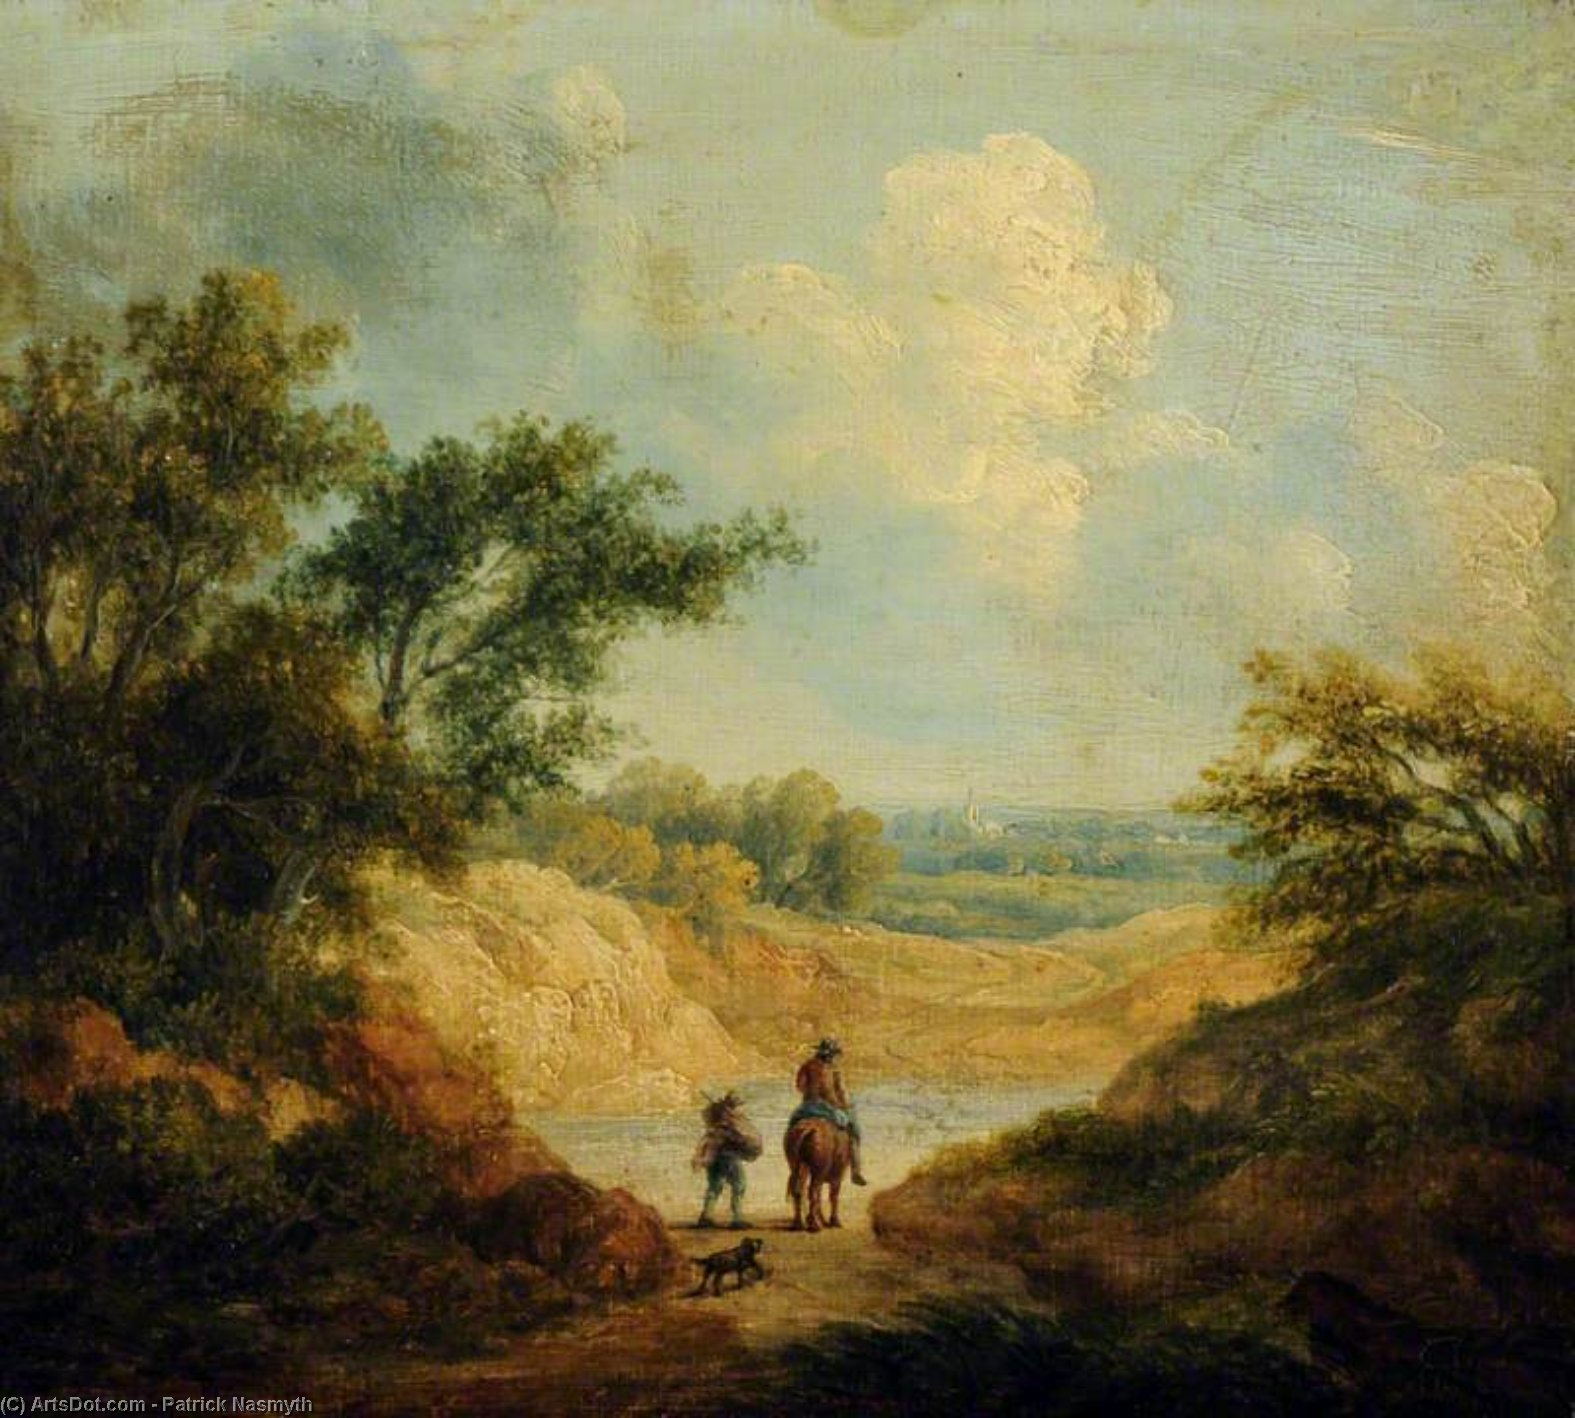 Landscape With A Figure On Horseback, And A Fellow Traveller On Foot by Patrick Nasmyth (1787-1831, United Kingdom) | Museum Quality Reproductions | ArtsDot.com